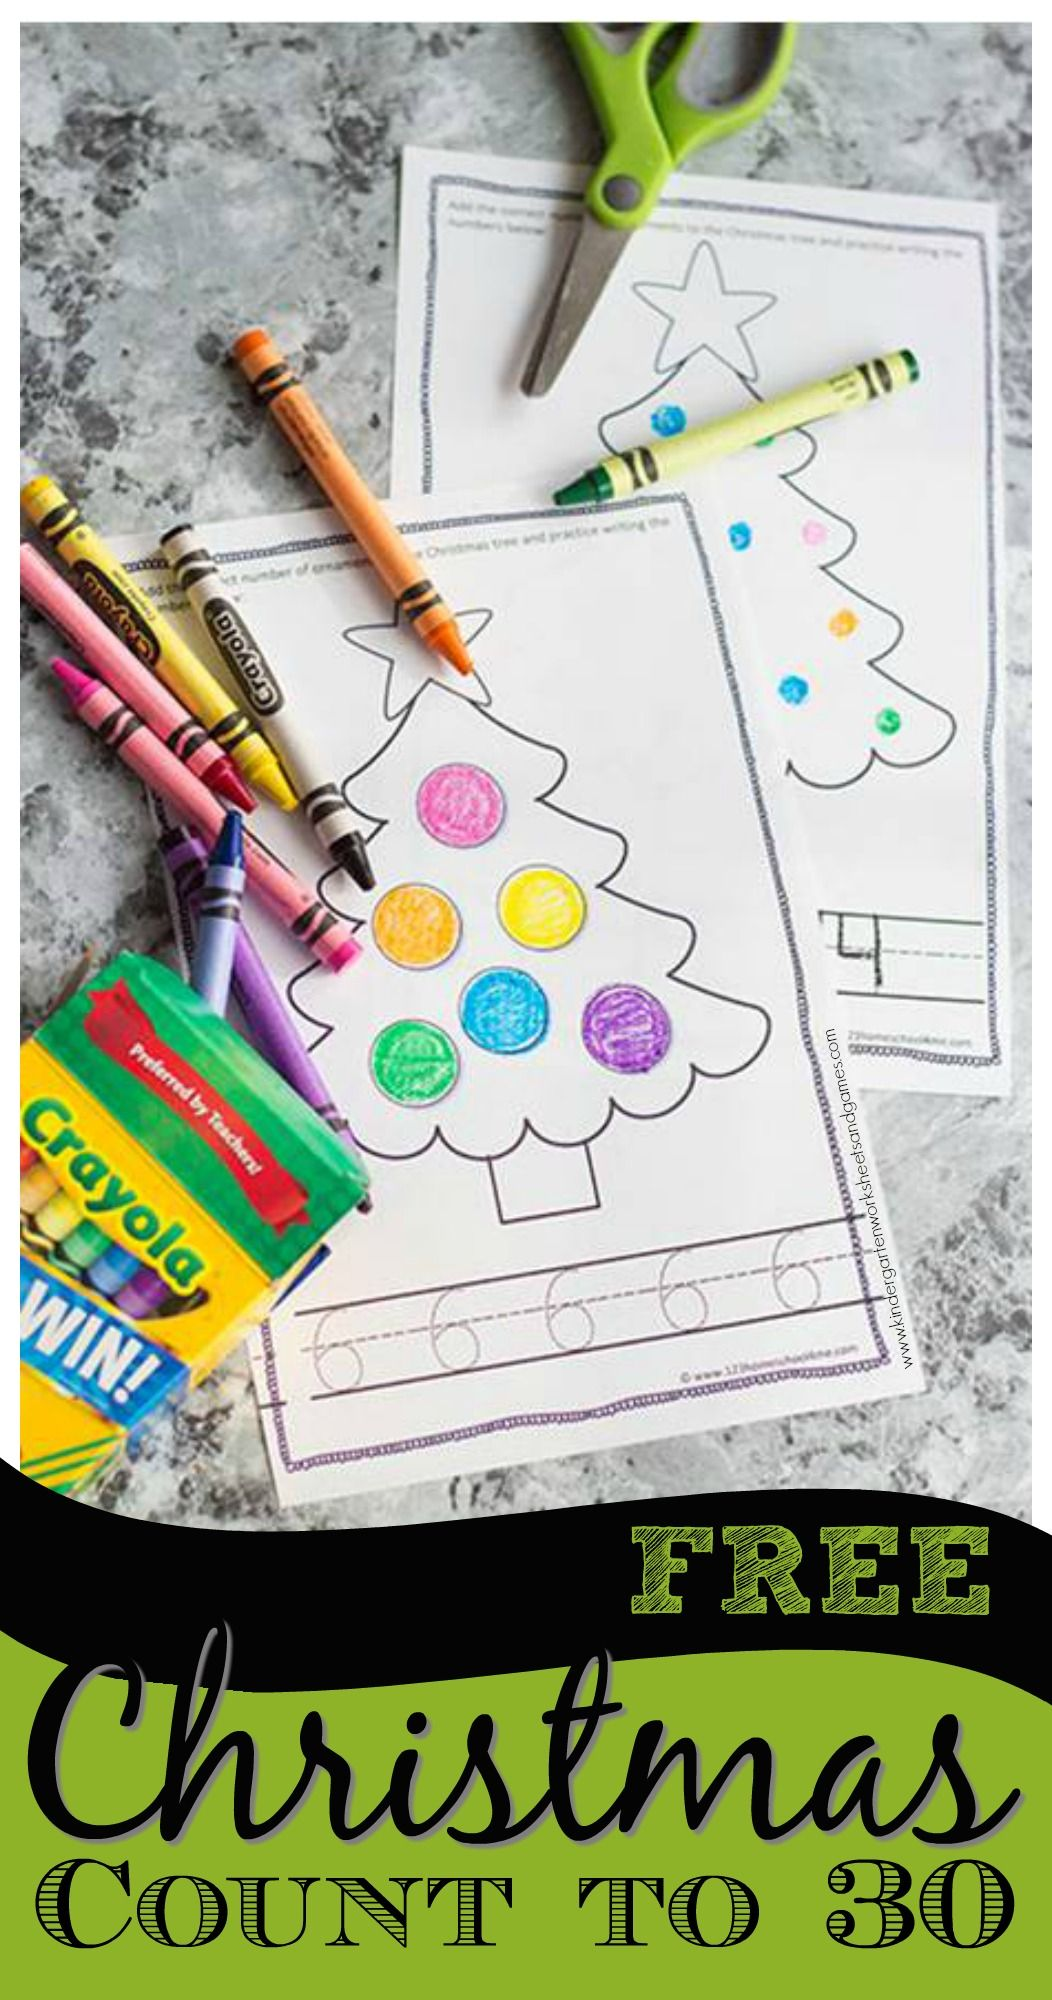 Free Christmas Counting Book